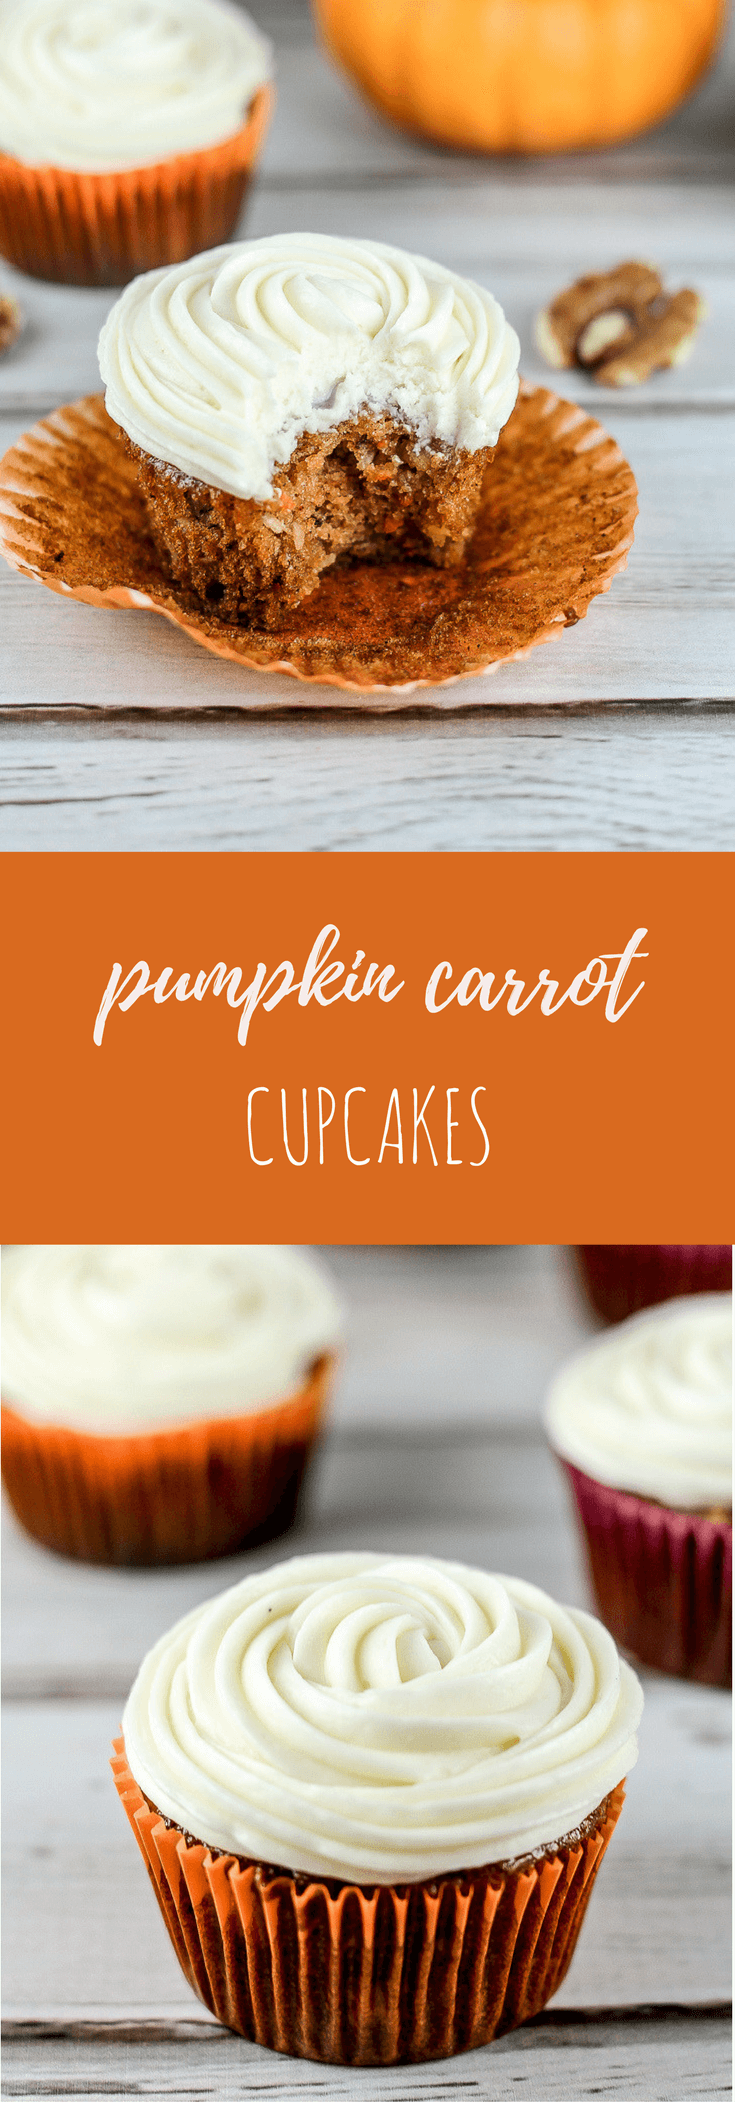 Pumpkin carrot cupcakes with cream cheese frosting